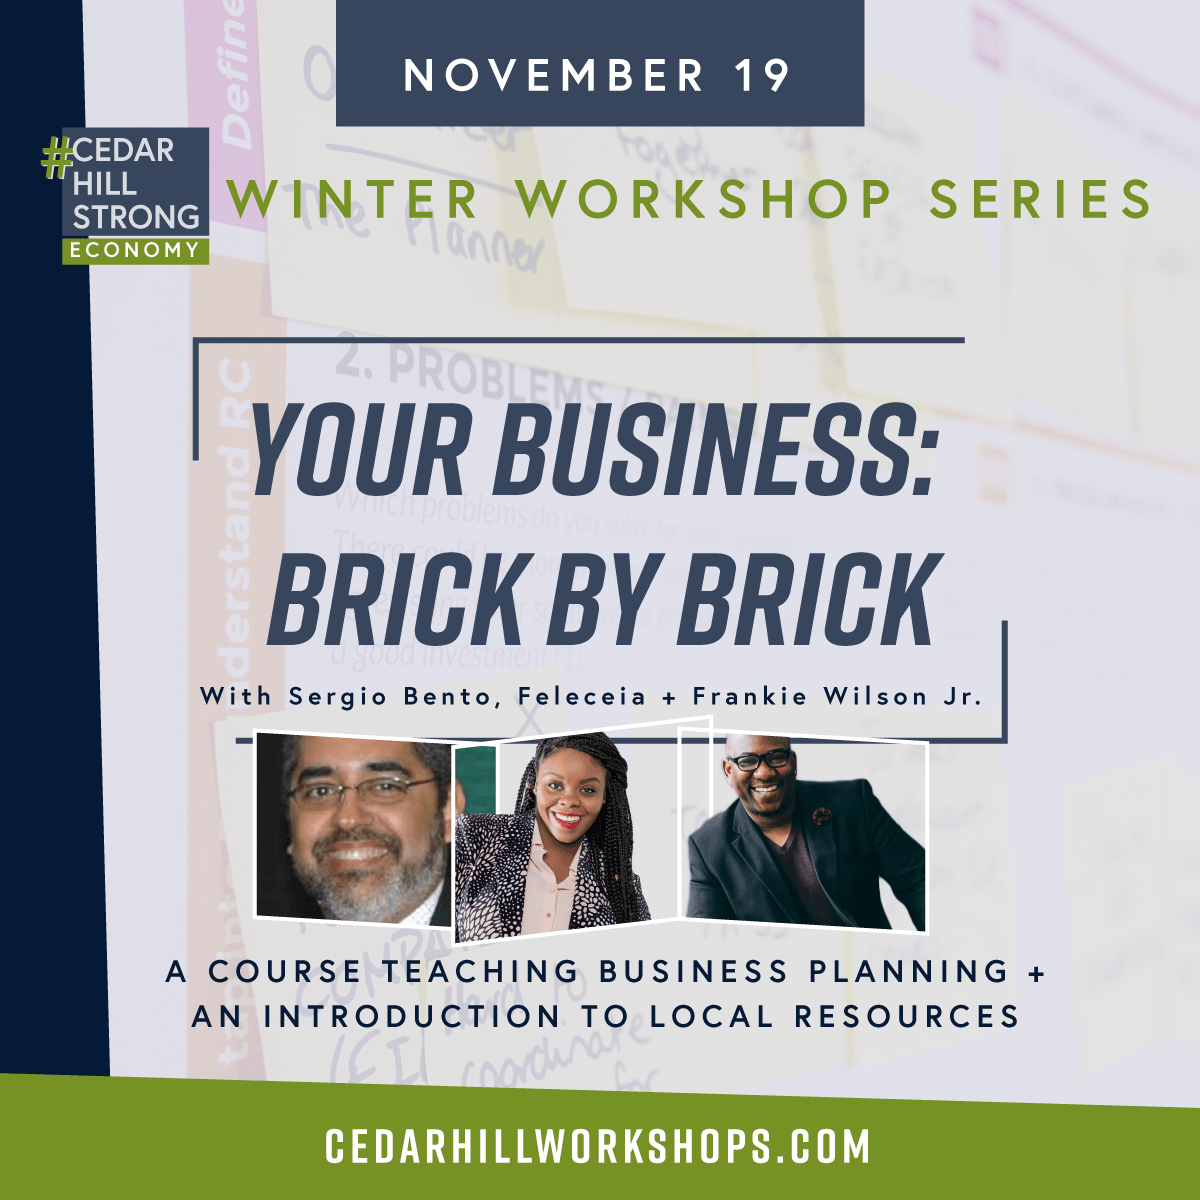 Cedar Hill Chamber Offers Free Workshop To Help Regional Businesses